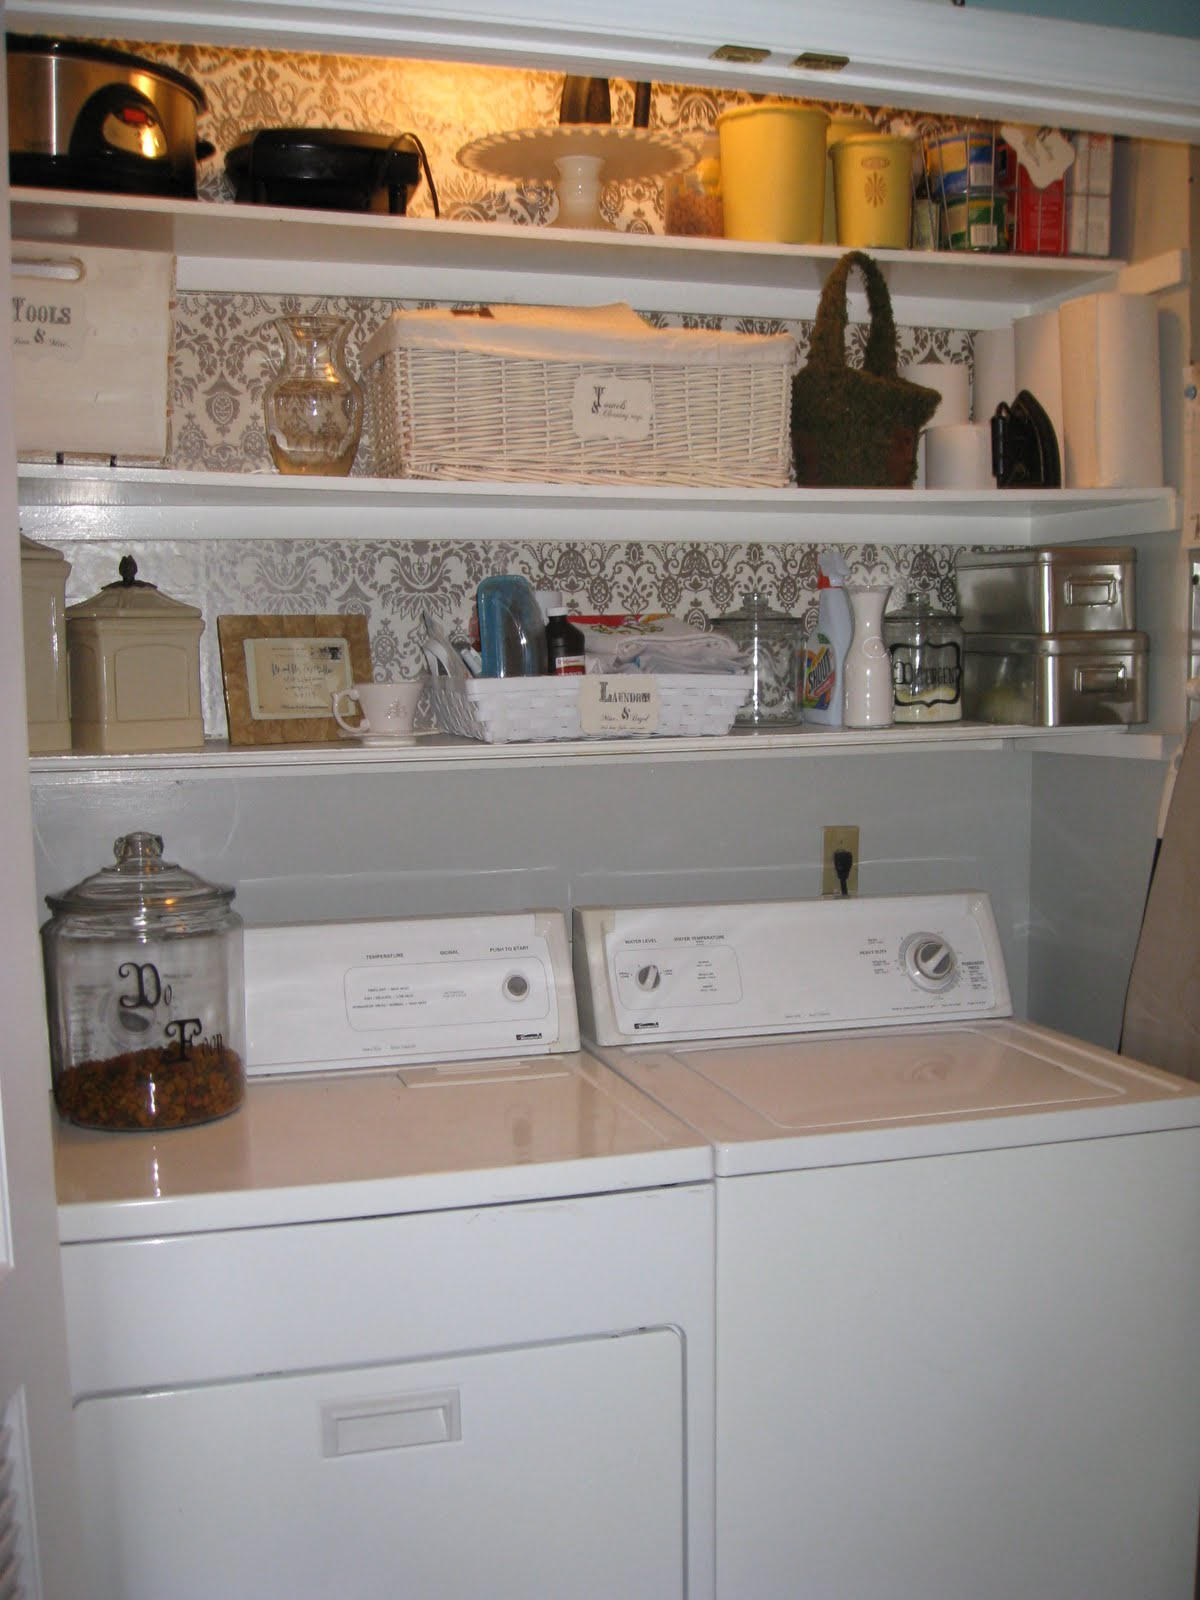 Laundry Room Shelving Ideas for Small Spaces You Need to ... on Laundry Room Organization Ideas  id=31377